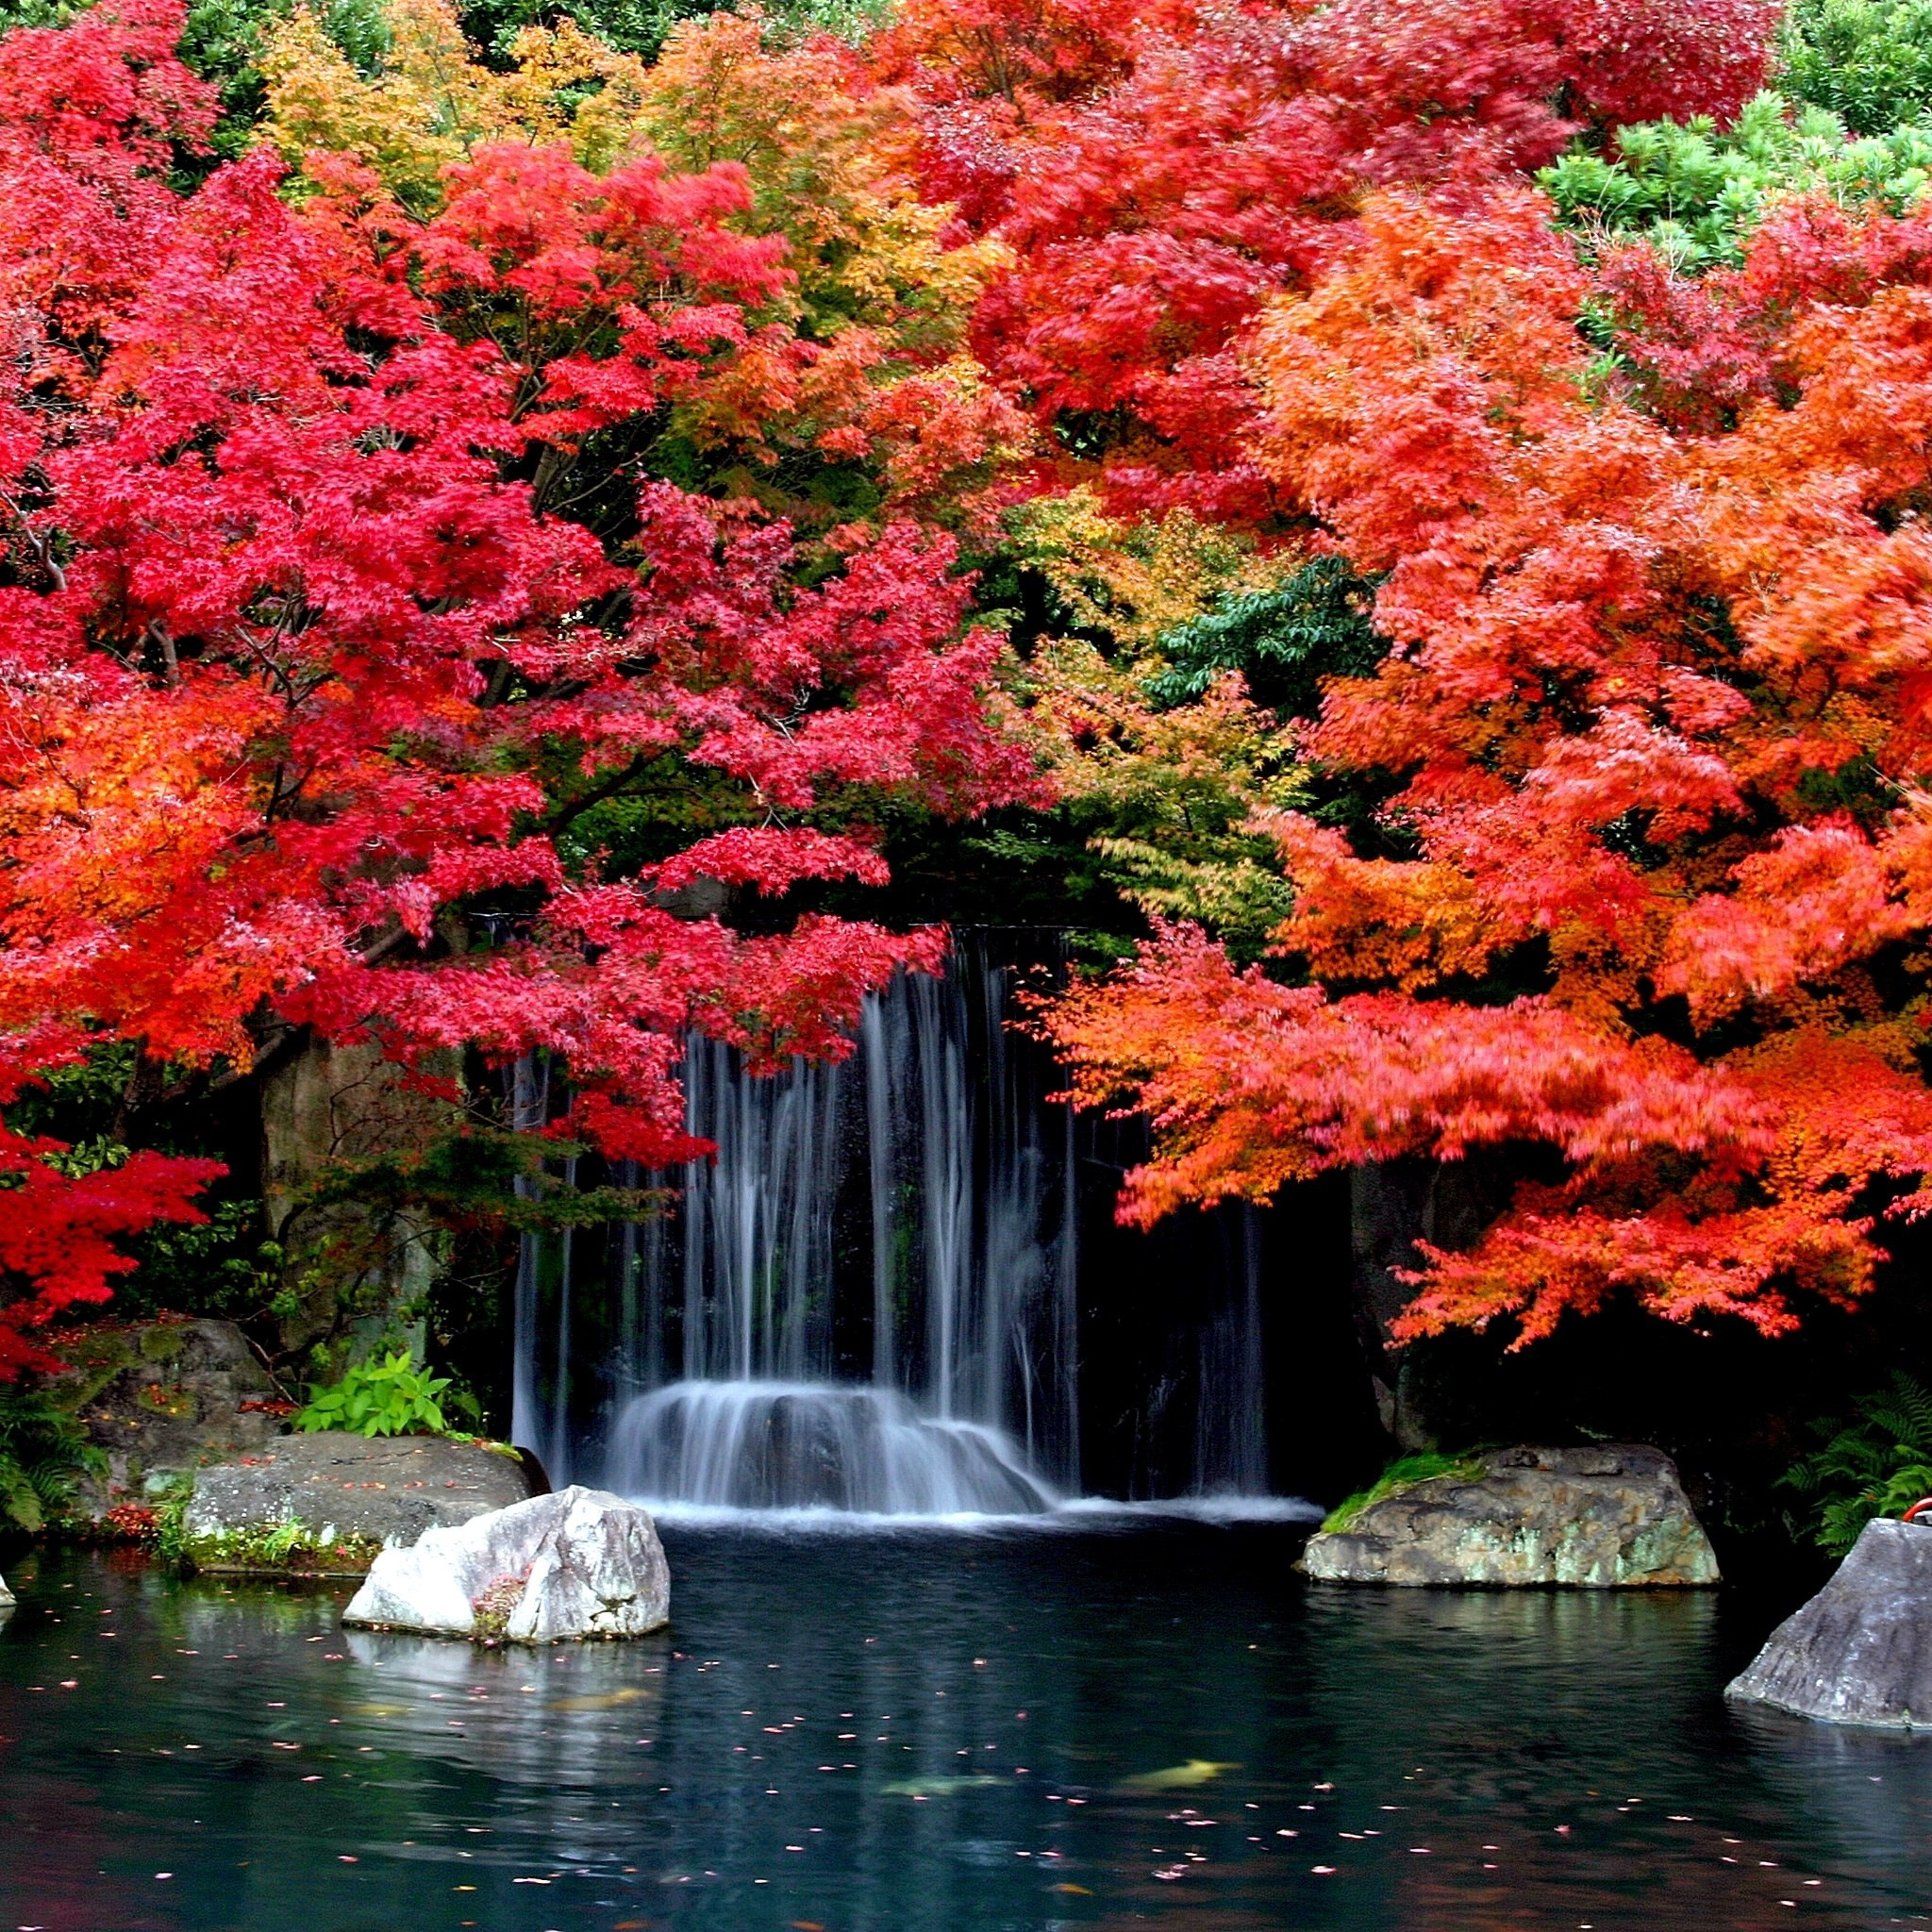 Cool Wallpapers with Autumn Leaves and Waterfall for iPad Air Retina 2048x2048